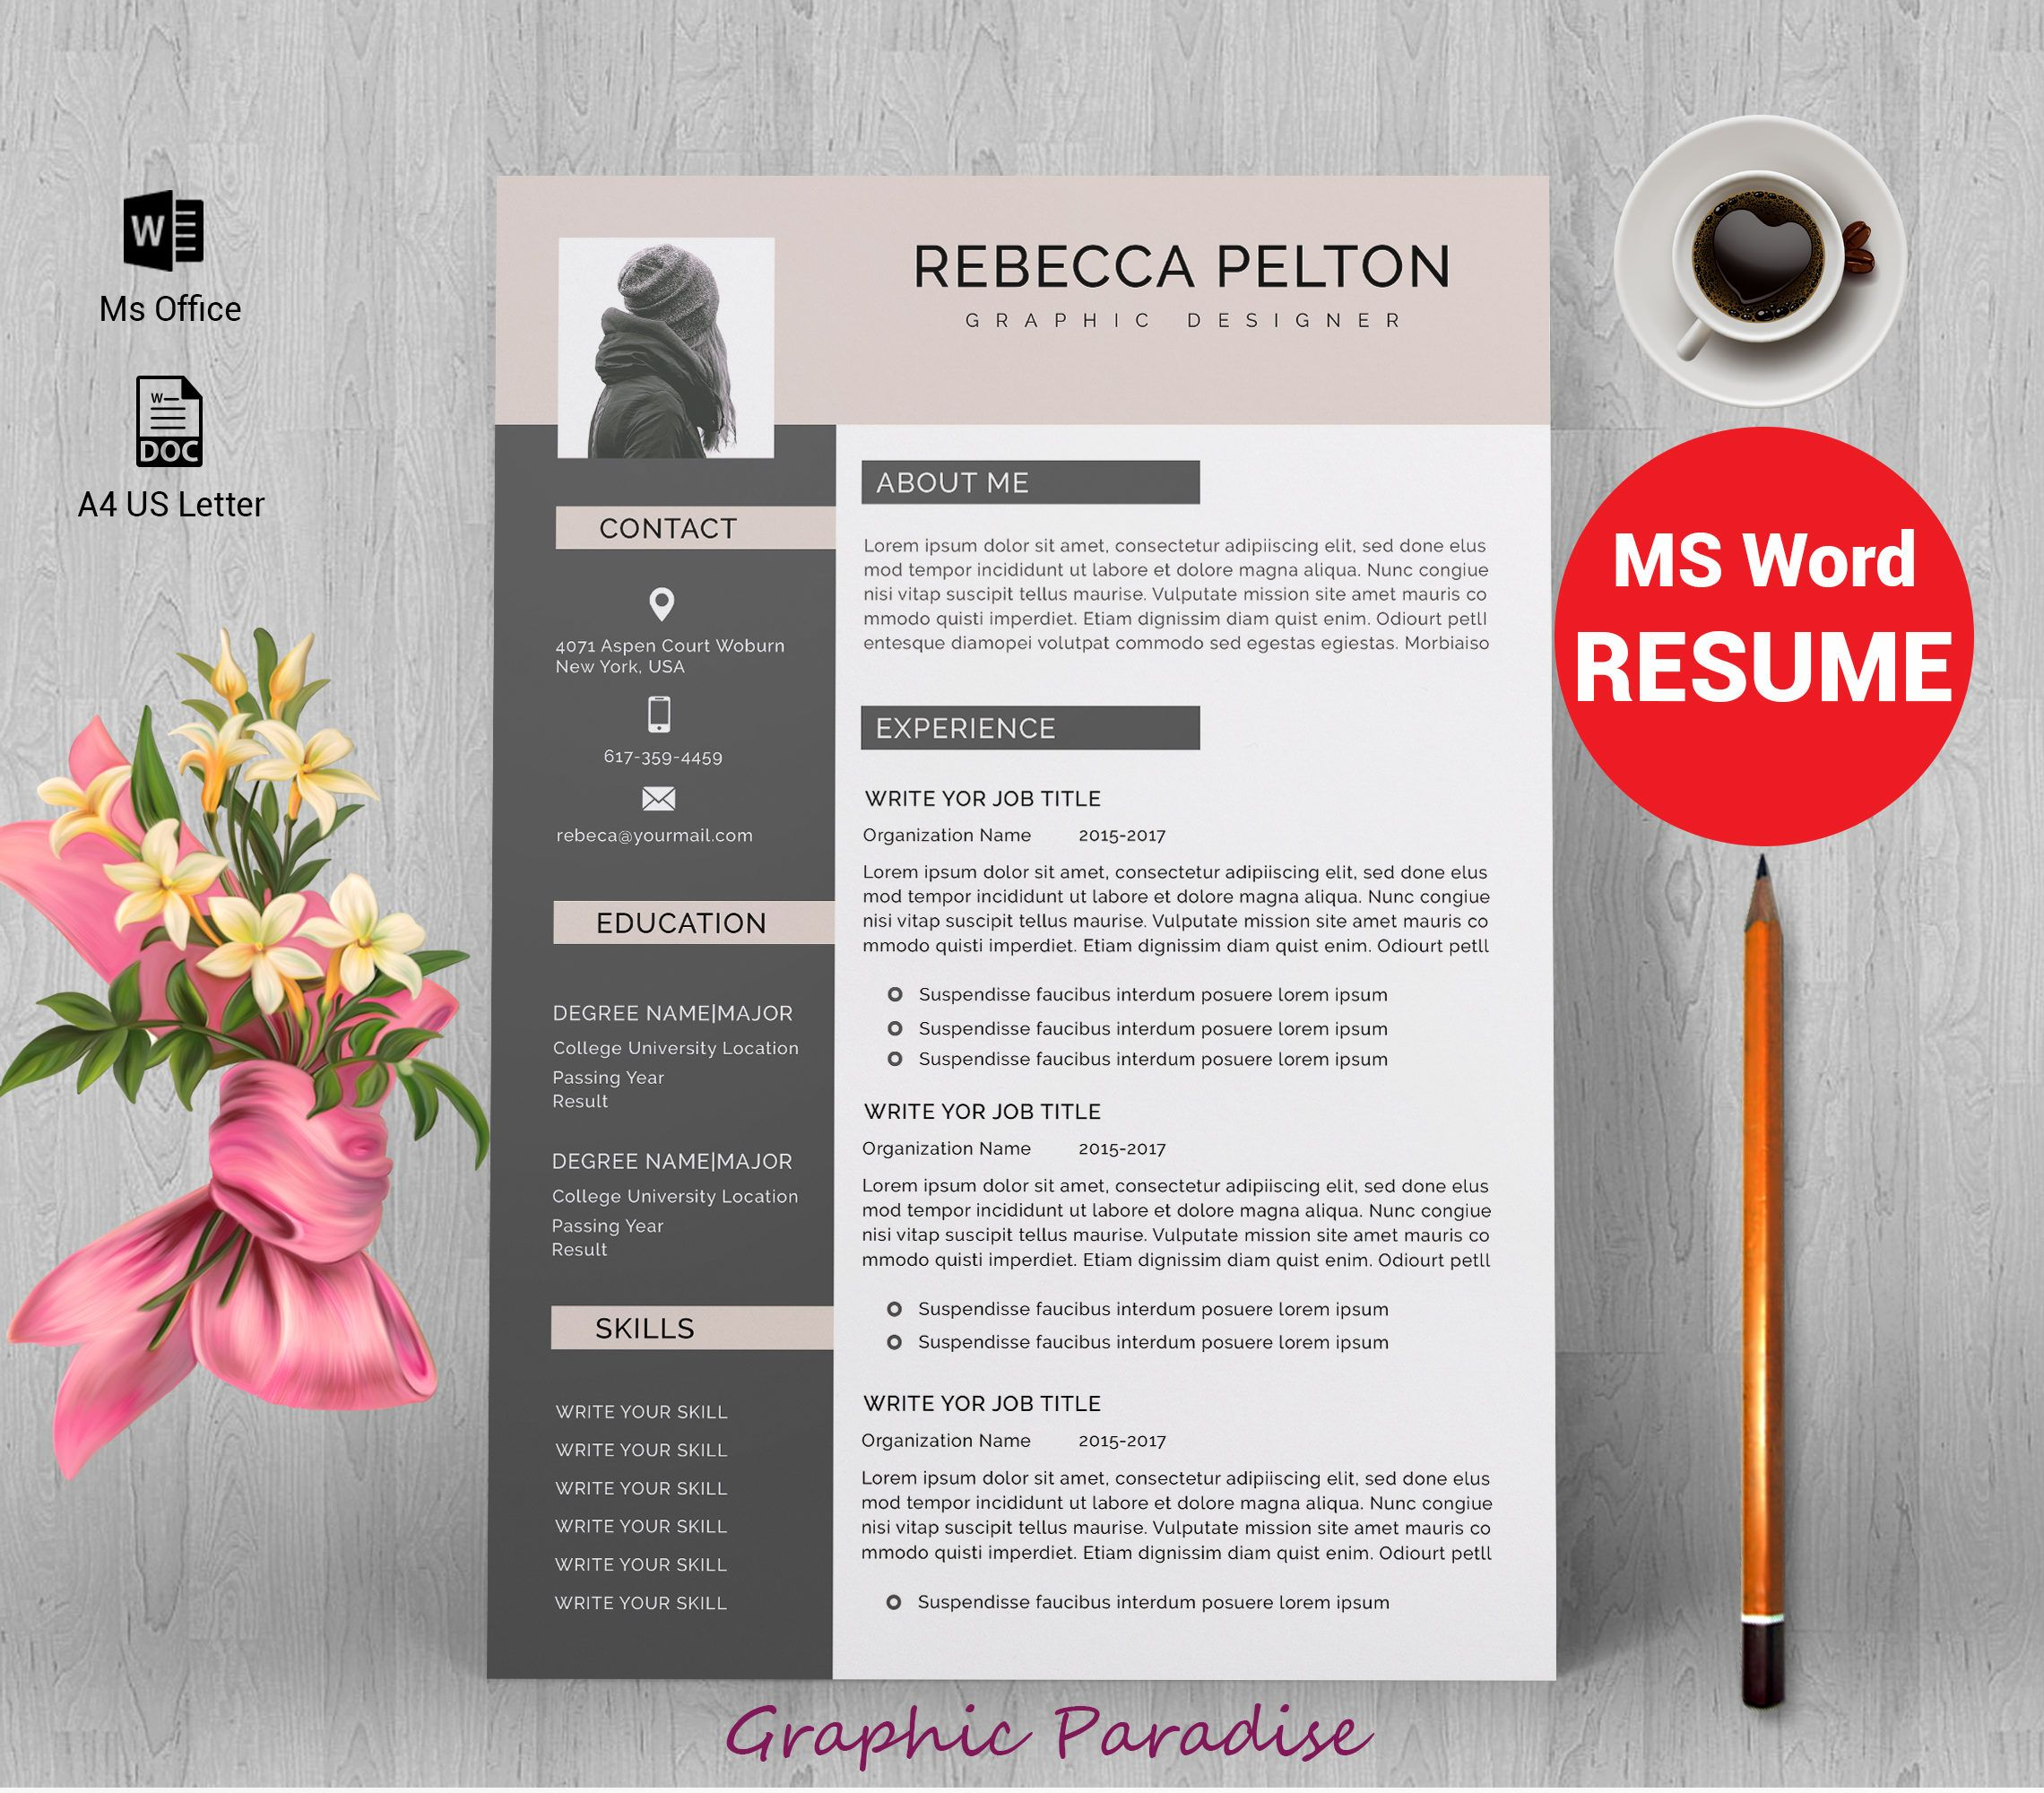 Resume template|Professional resume template|Resume template word|CV ...